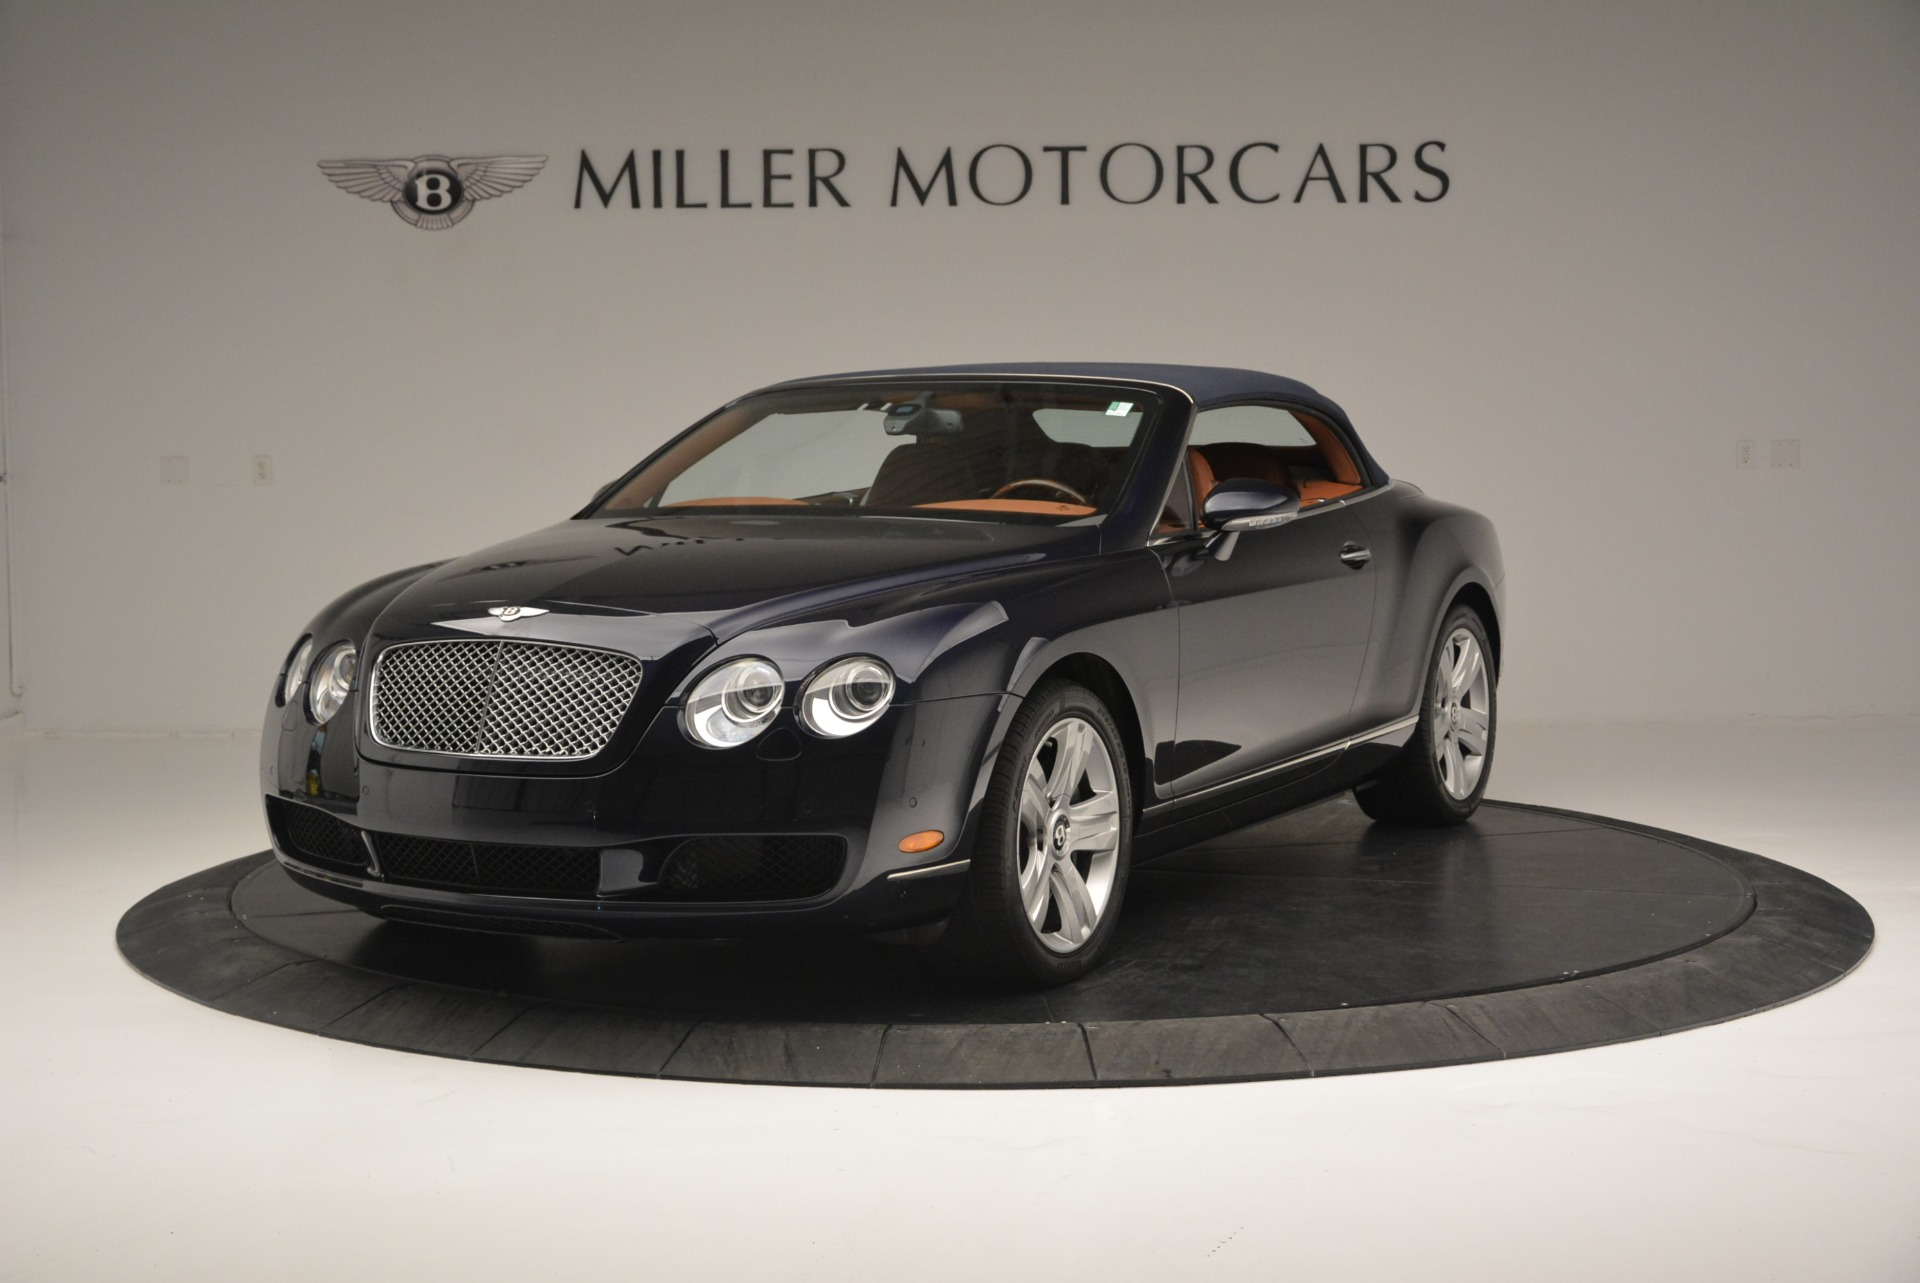 Used 2008 Bentley Continental GTC  For Sale In Westport, CT 2307_p11